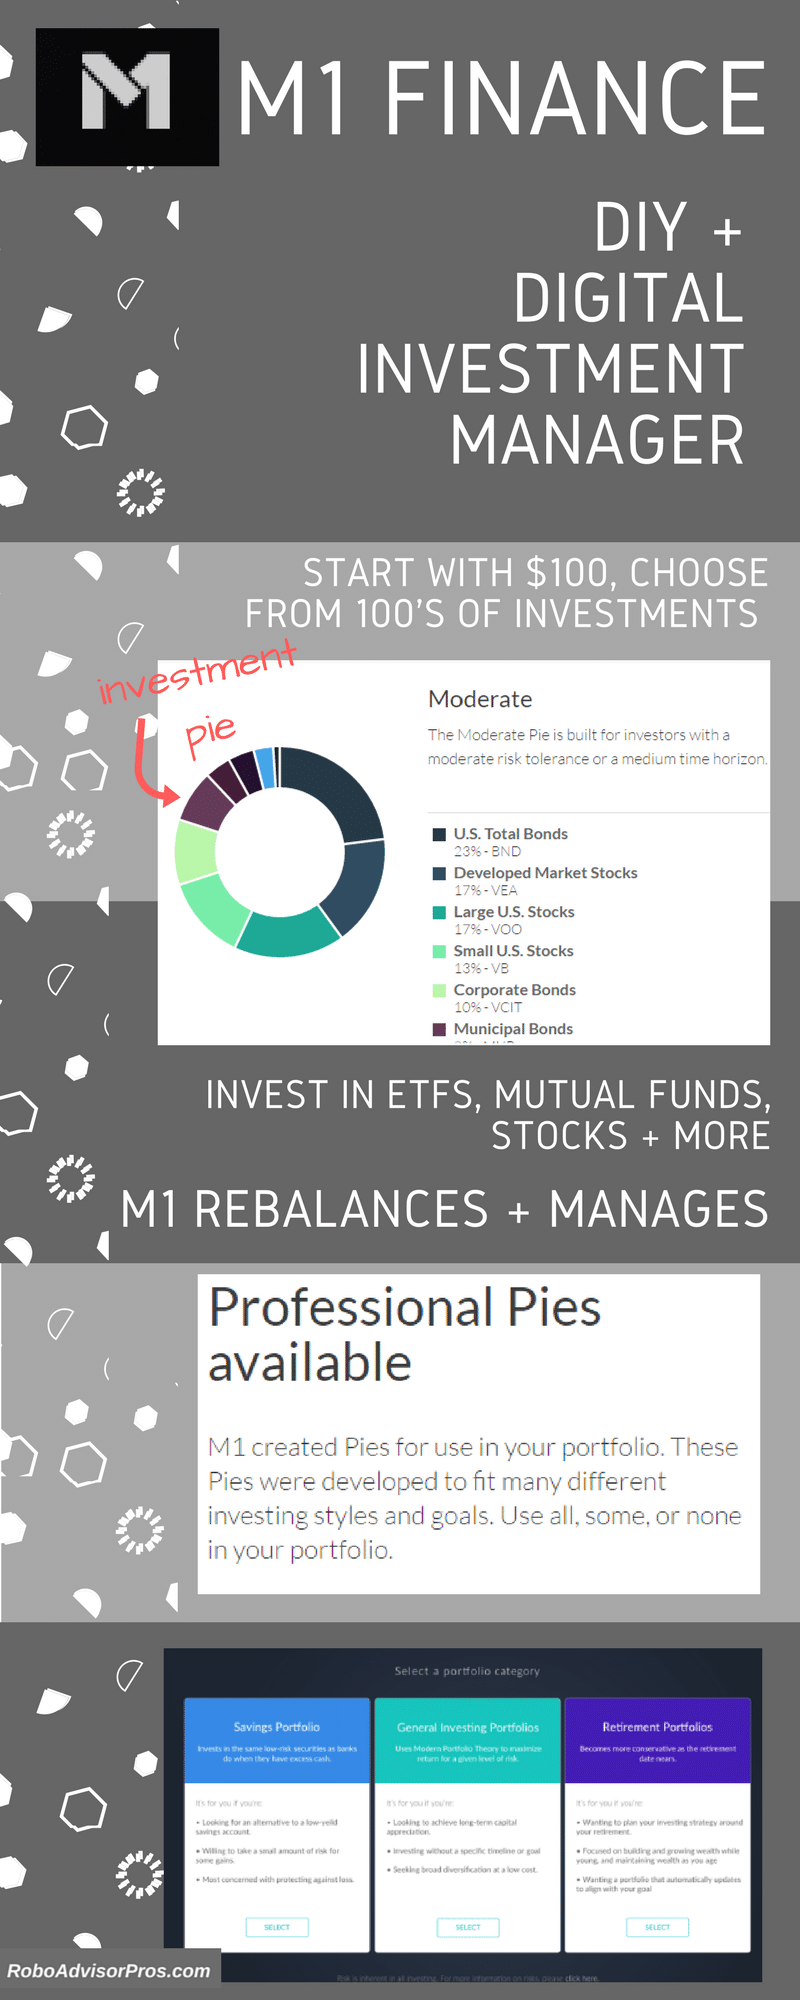 M1 Finance Review Infographic - DIY + Investment Management Robo-Advisor